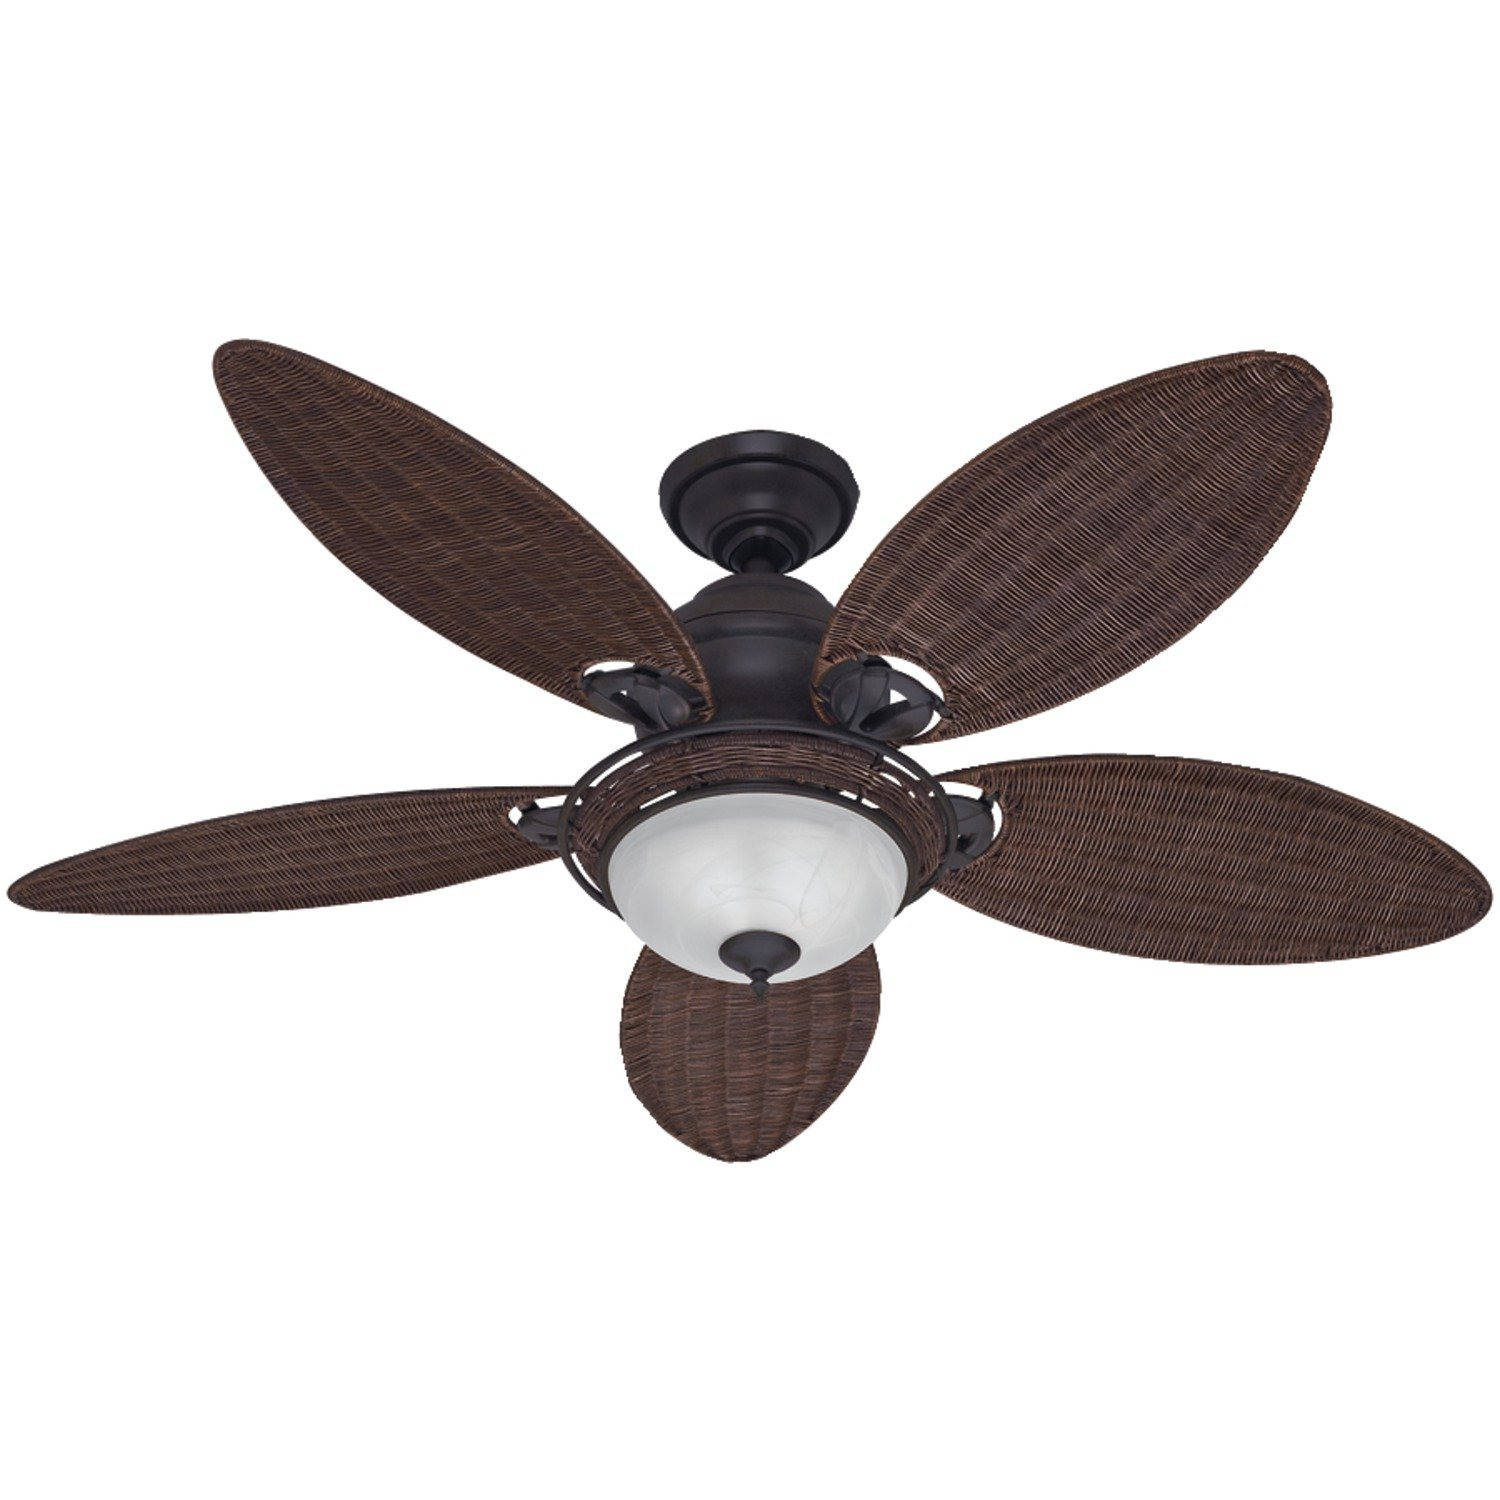 Best man cave ceiling fans man cave mastery hunter fan company 54095 caribbean breeze 54 inch ceiling fan aloadofball